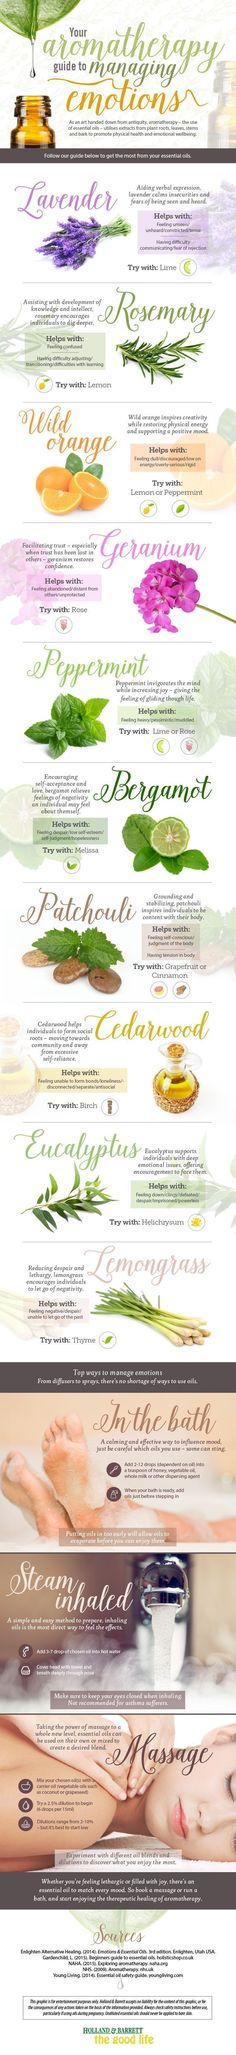 Your visual guide to using Aromatherapy and Essential Oils to Manage Mood and Energy! ❤ http://purasentials.com ❤ essential oils with love